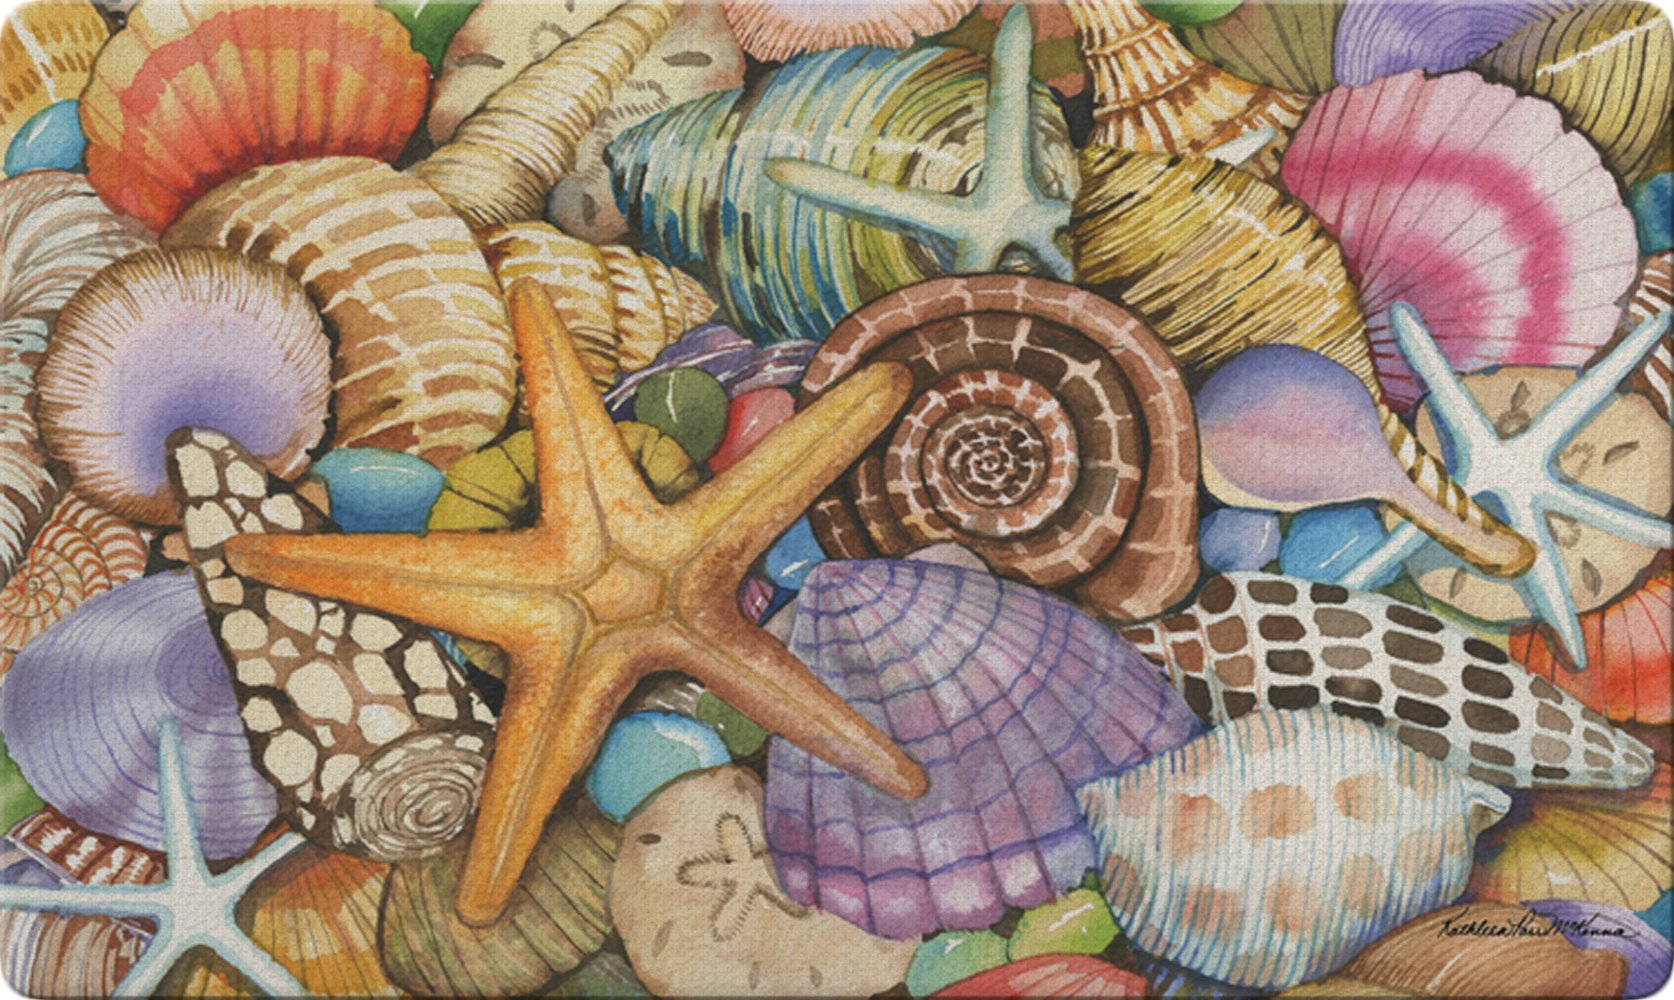 Toland Home Garden Shells of The Sea 18 x 30 Inch Decorative Floor Mat Colorful Beach Shell Collage Doormat